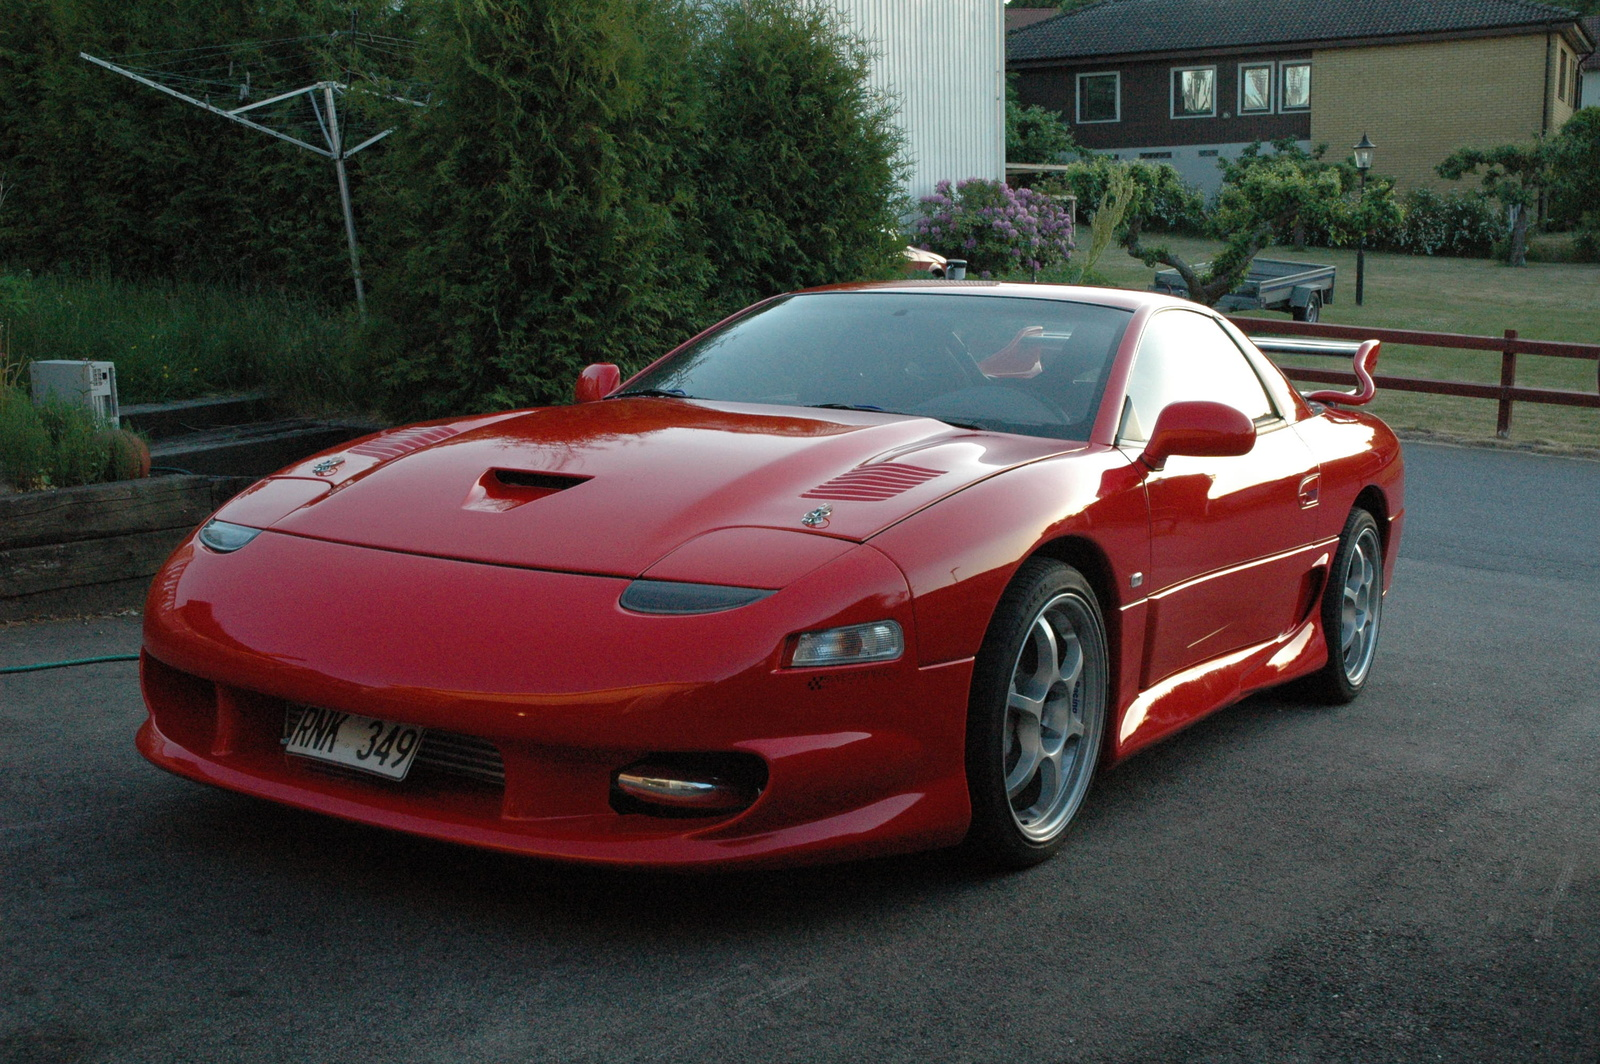 1999 Mitsubishi 3000gt Body Kit Images & Pictures - Becuo